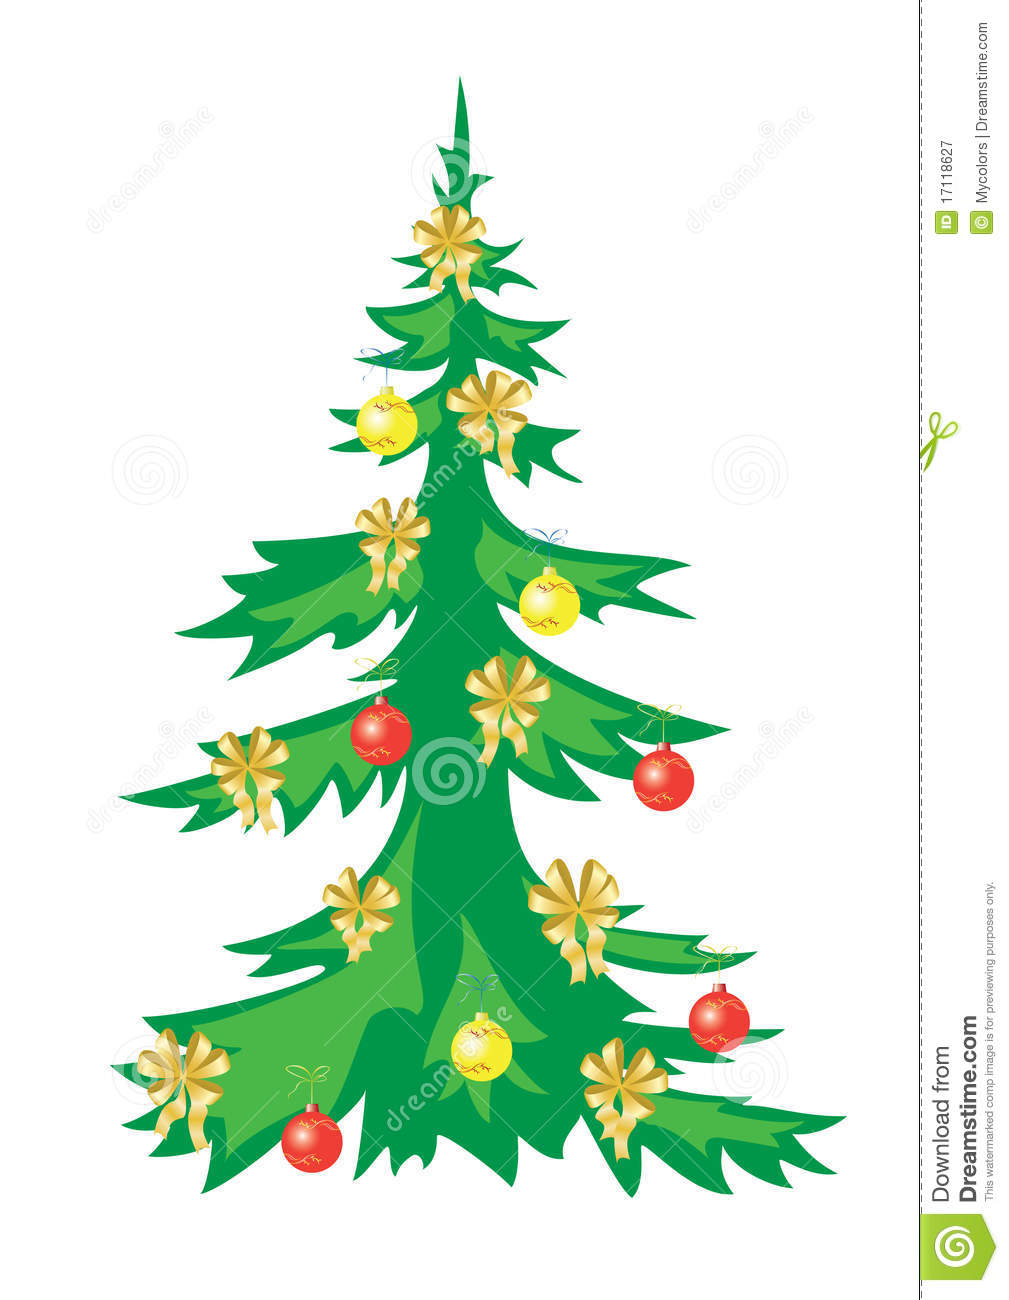 Christmas Vector Tree With Decorations Stock Vector ...